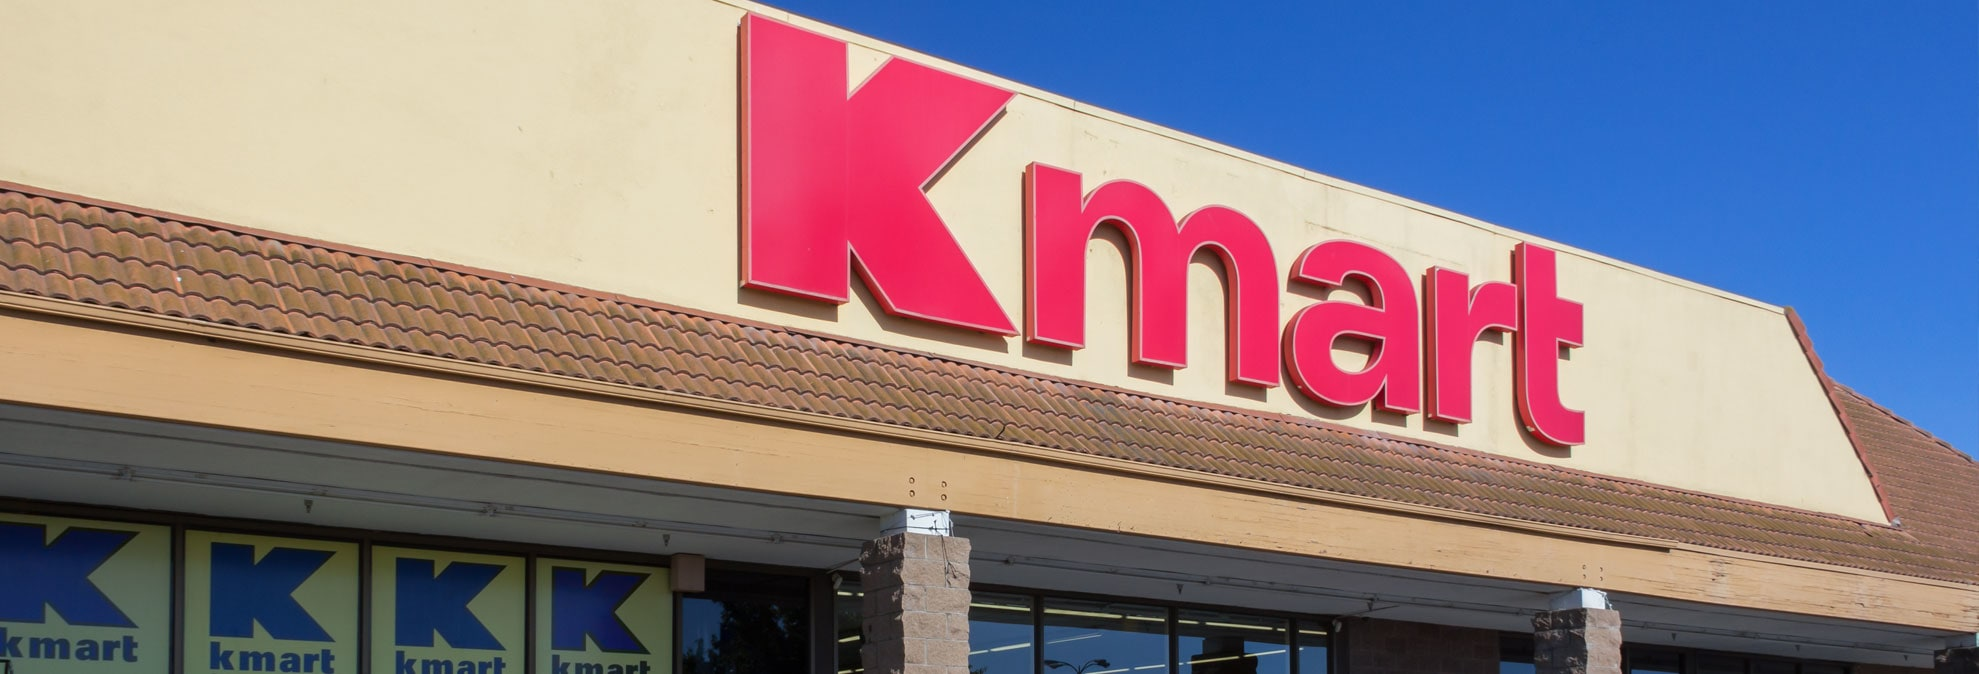 Kmart Victim Of Second Hack Attack In Three Years